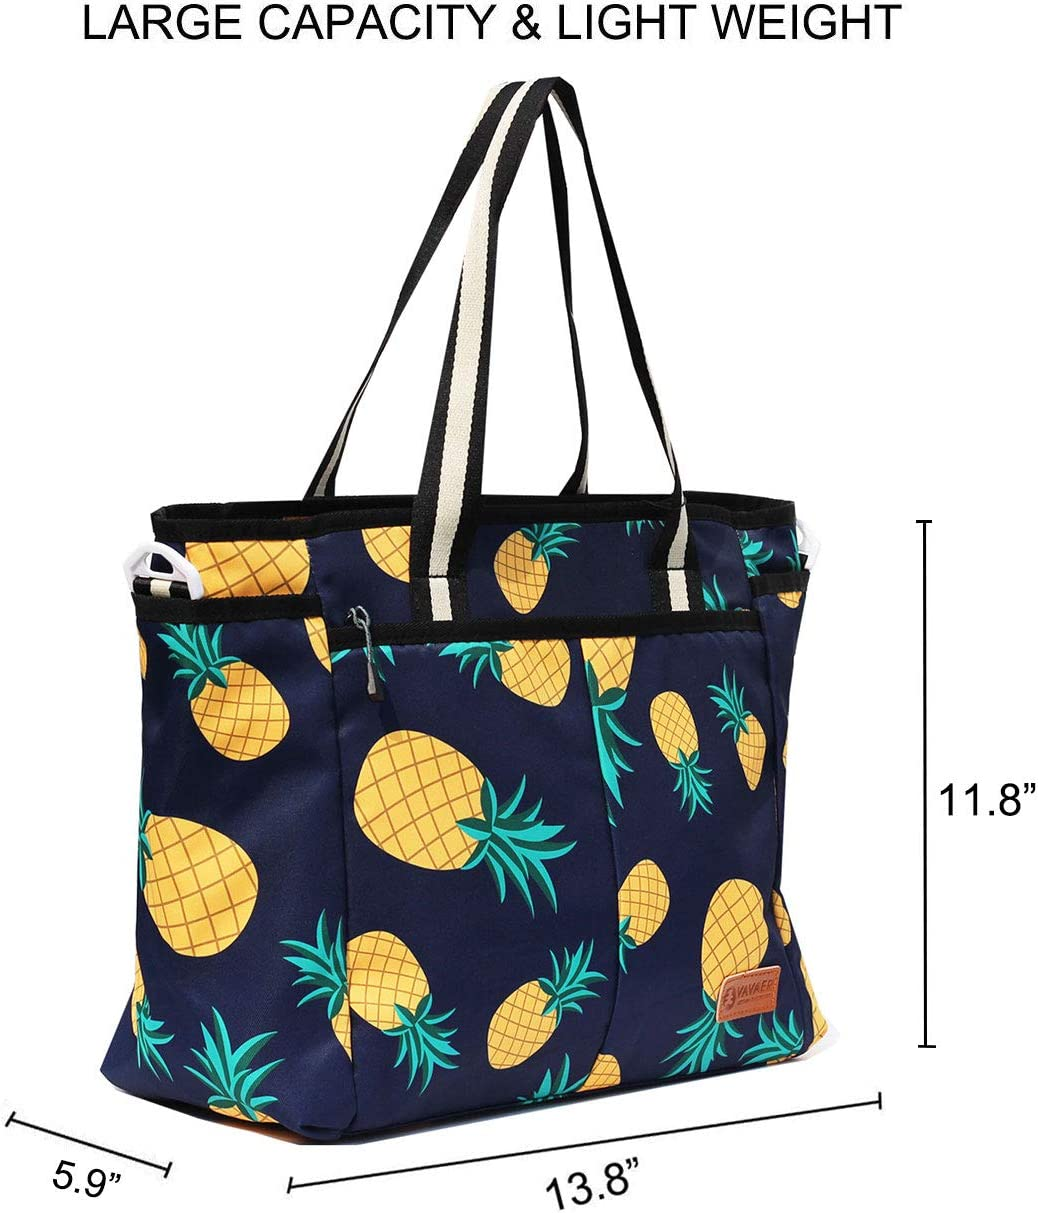 Happy-pineapple Travel Carry-on Luggage Weekender Bag Overnight Tote Flight Duffel In Trolley Handle